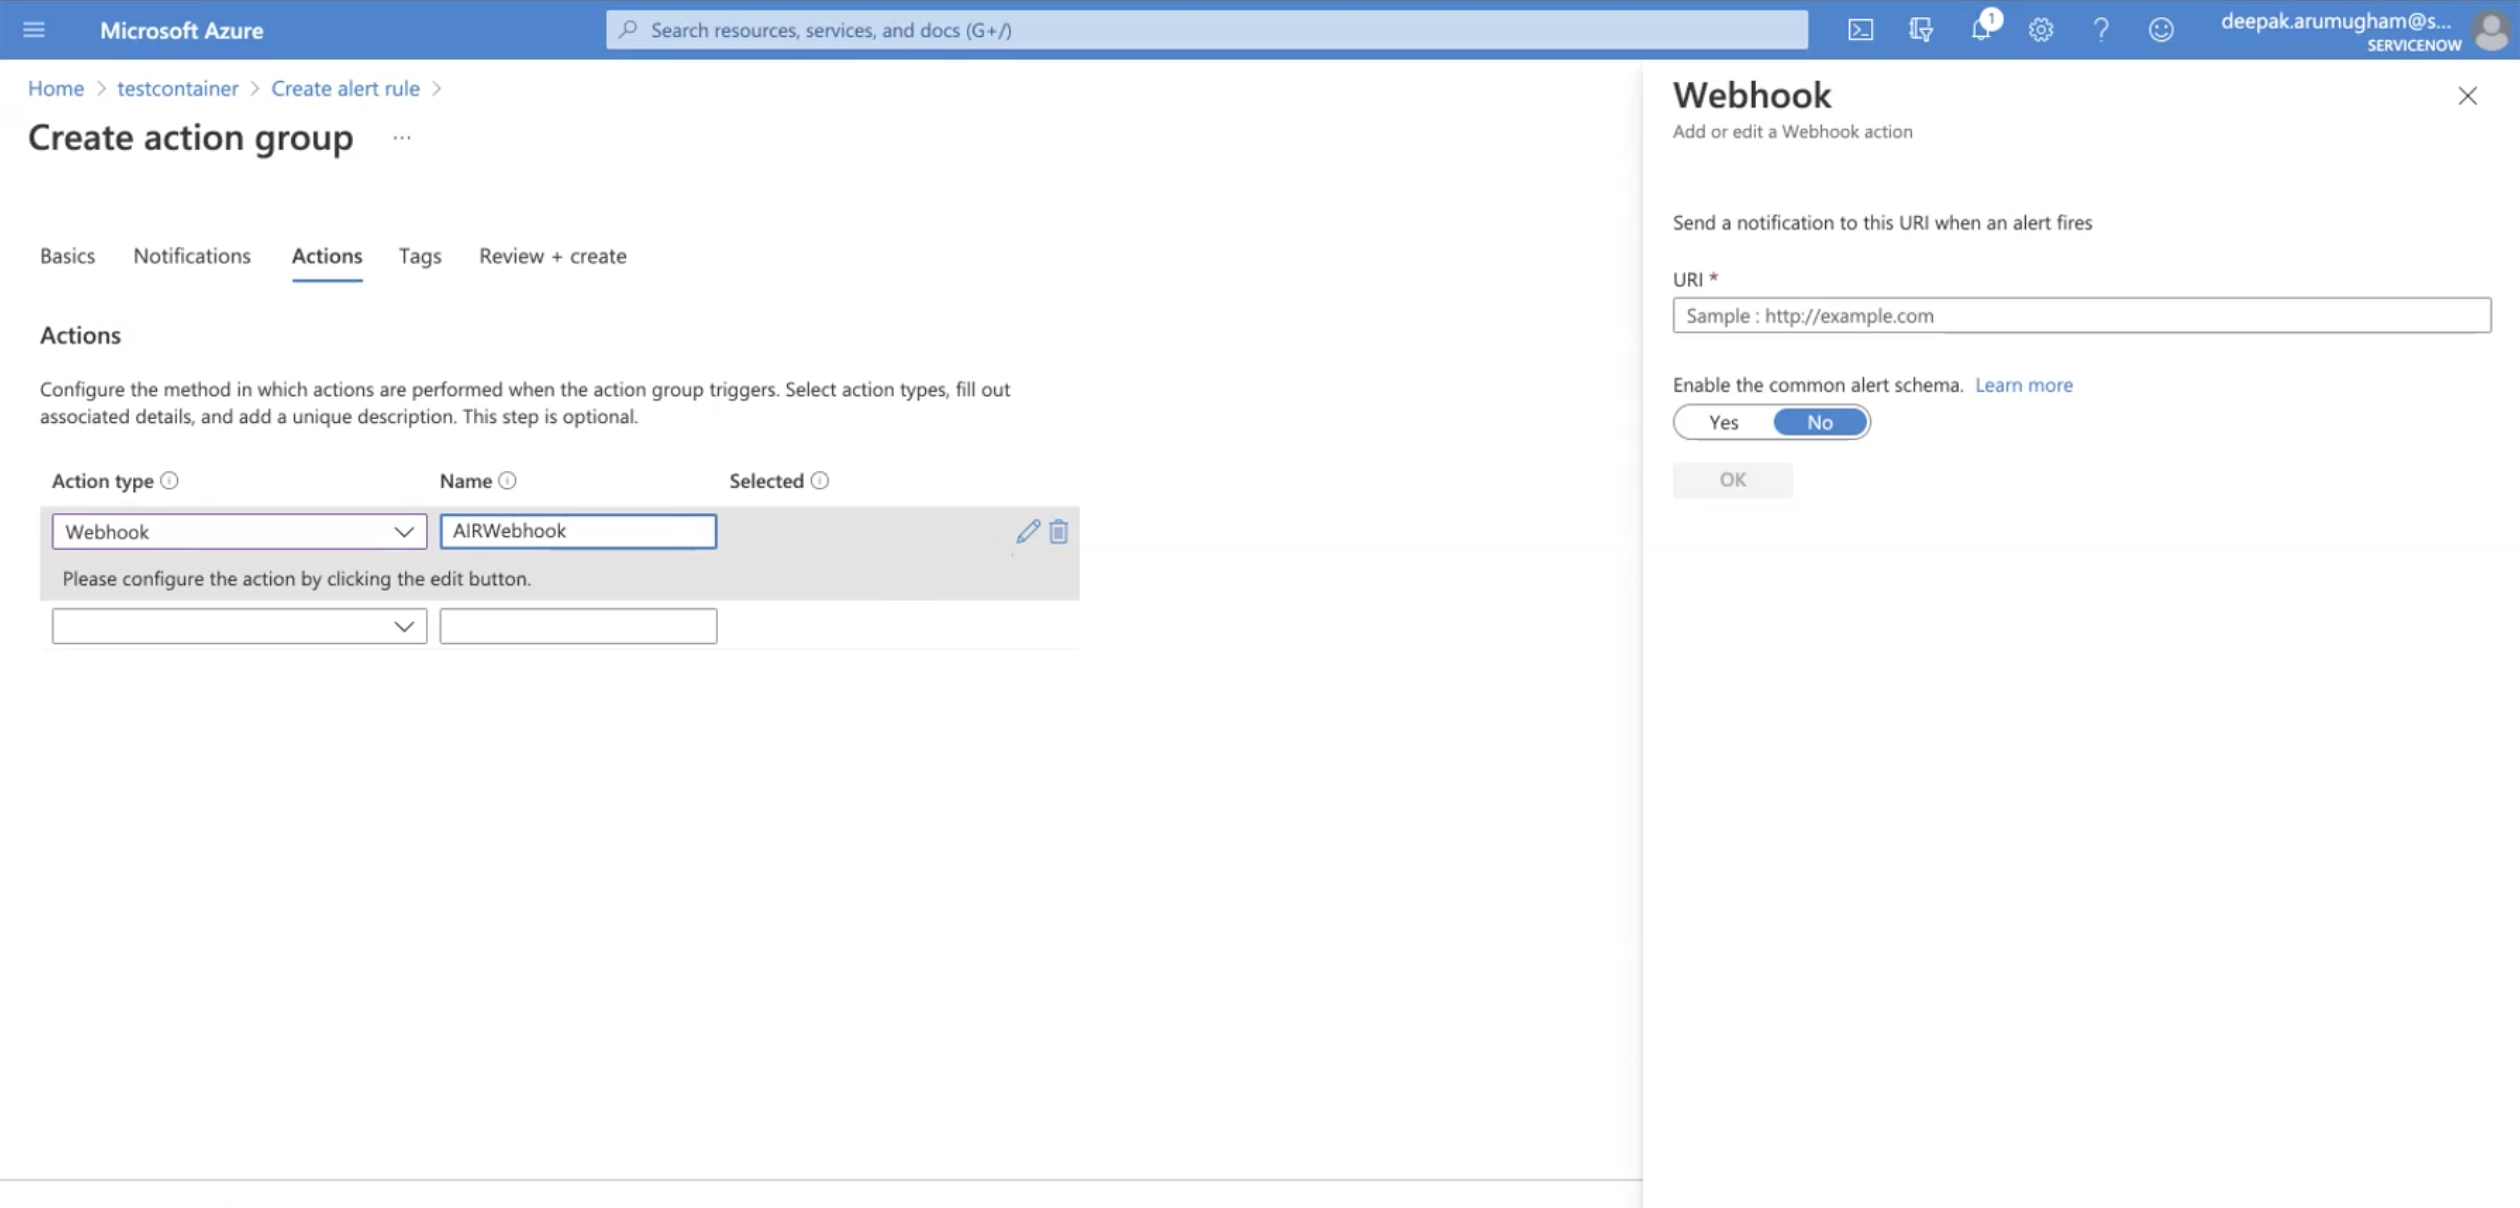 The Webhook page appears.